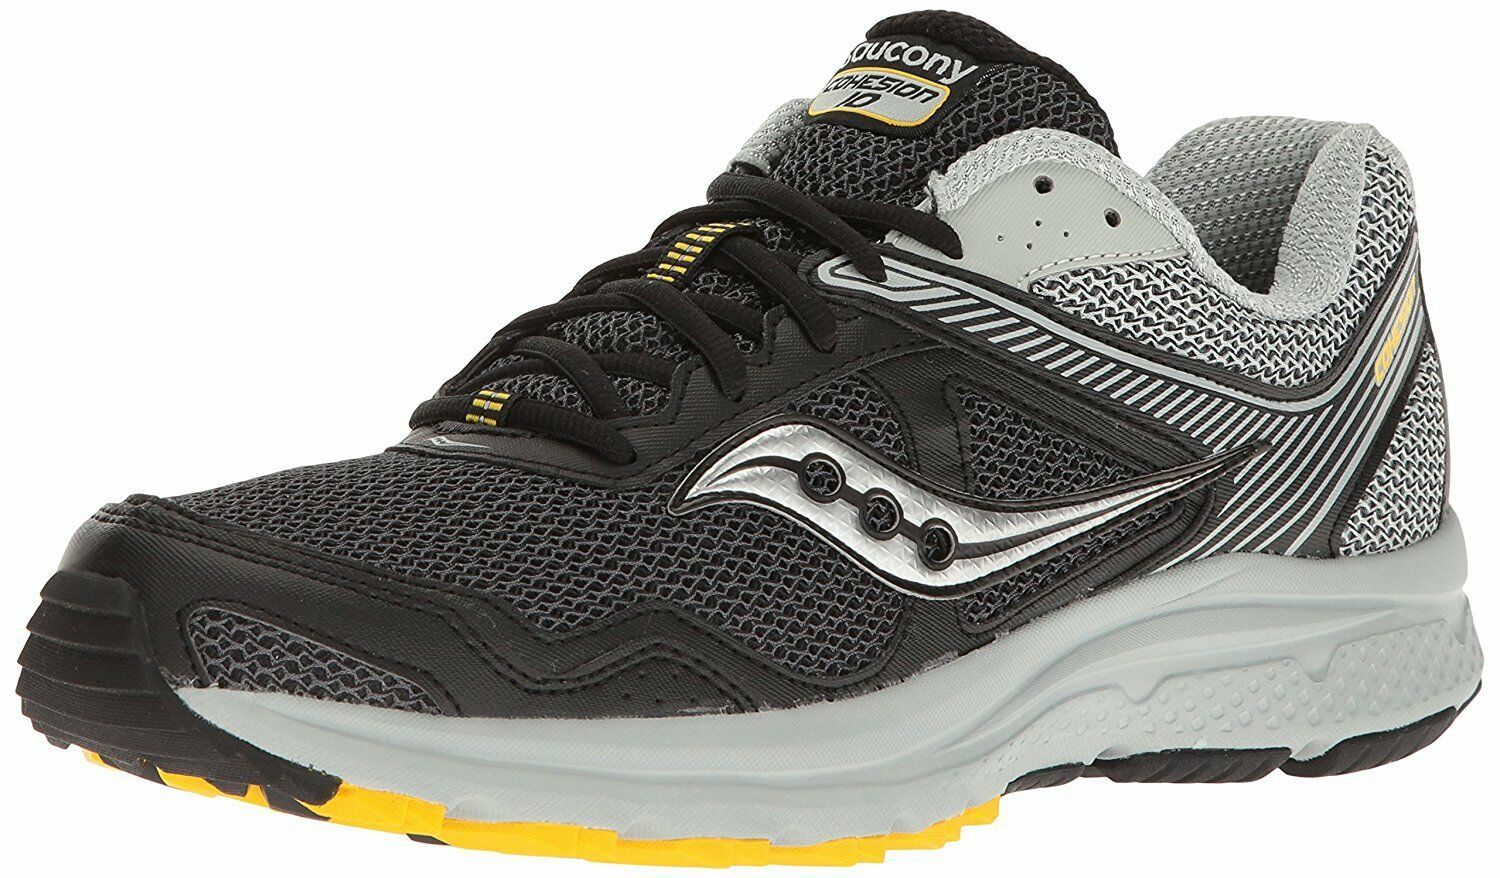 Saucony Men's Black/Grey/Yellow Cohesion 10 Running Runners Shoes Sneaker NIB